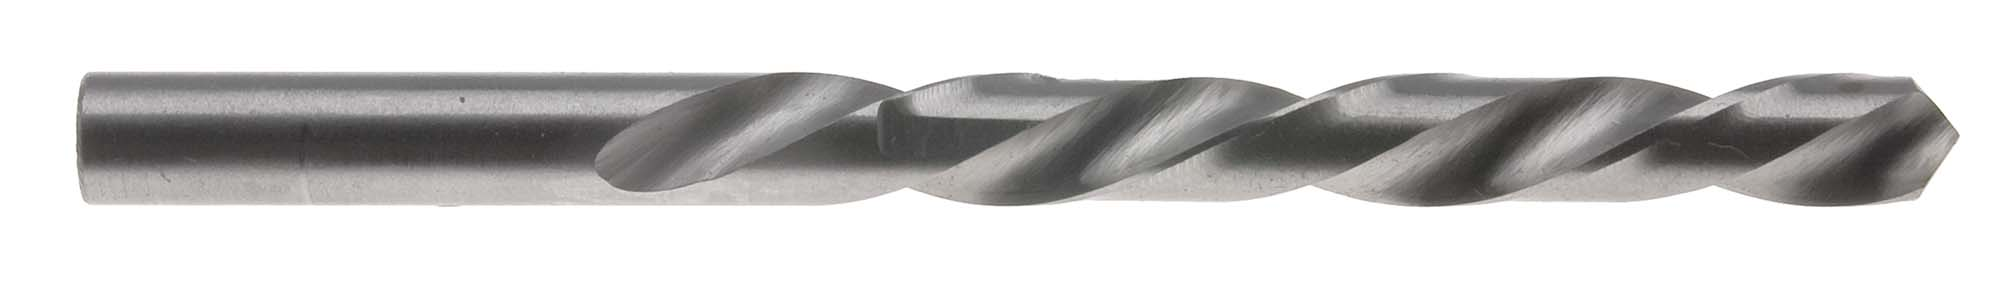 "#37 (.1040"") Left Hand Jobber Drill Bit, High Speed Steel"